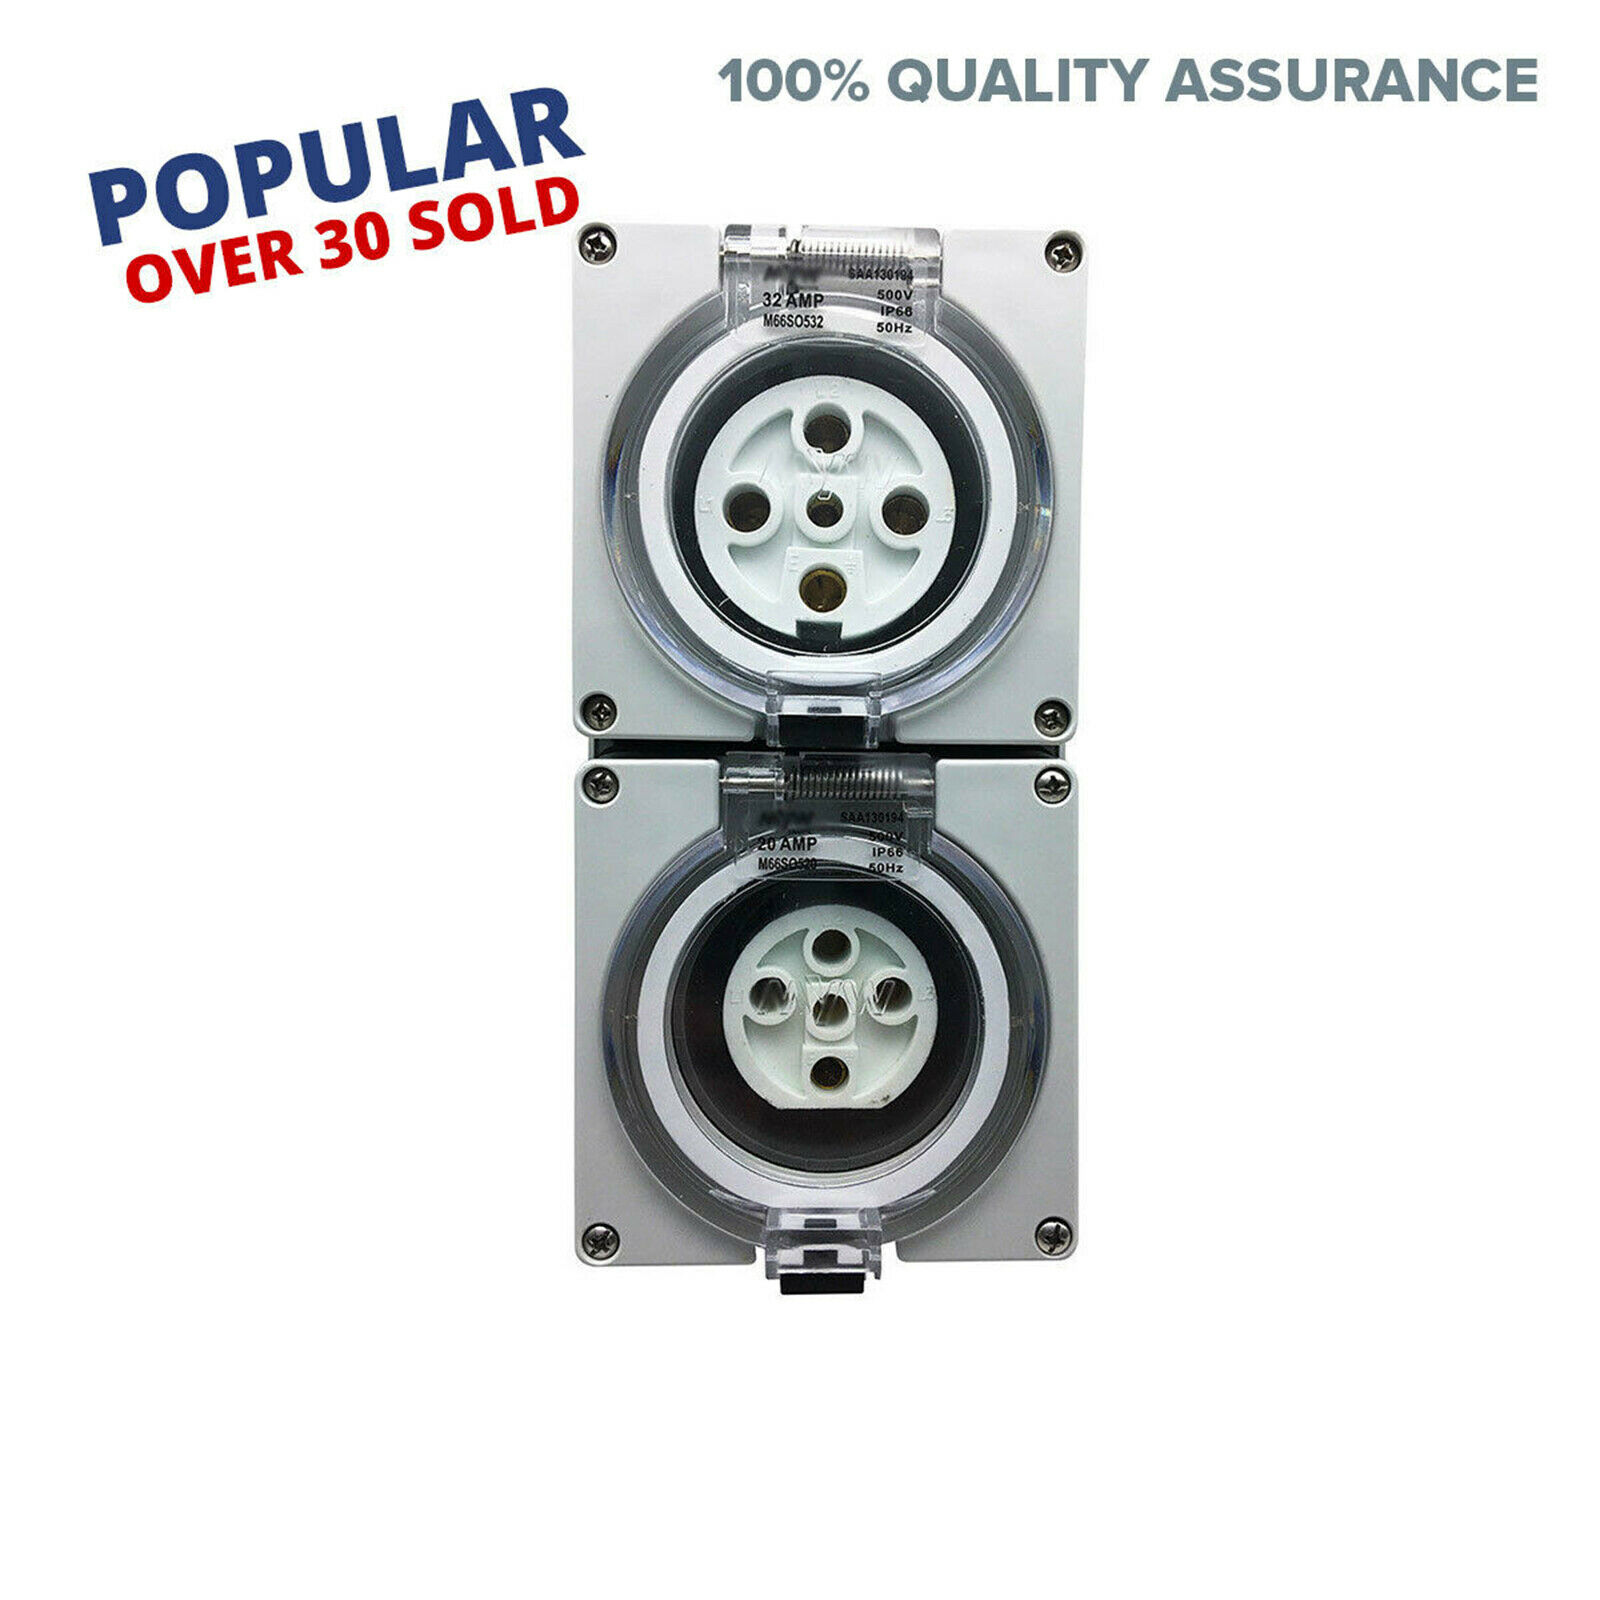 2 x 5 Pin 32 Amp 3 phase Socket Outlet IP66 Weatherproof Industrial Pole Only